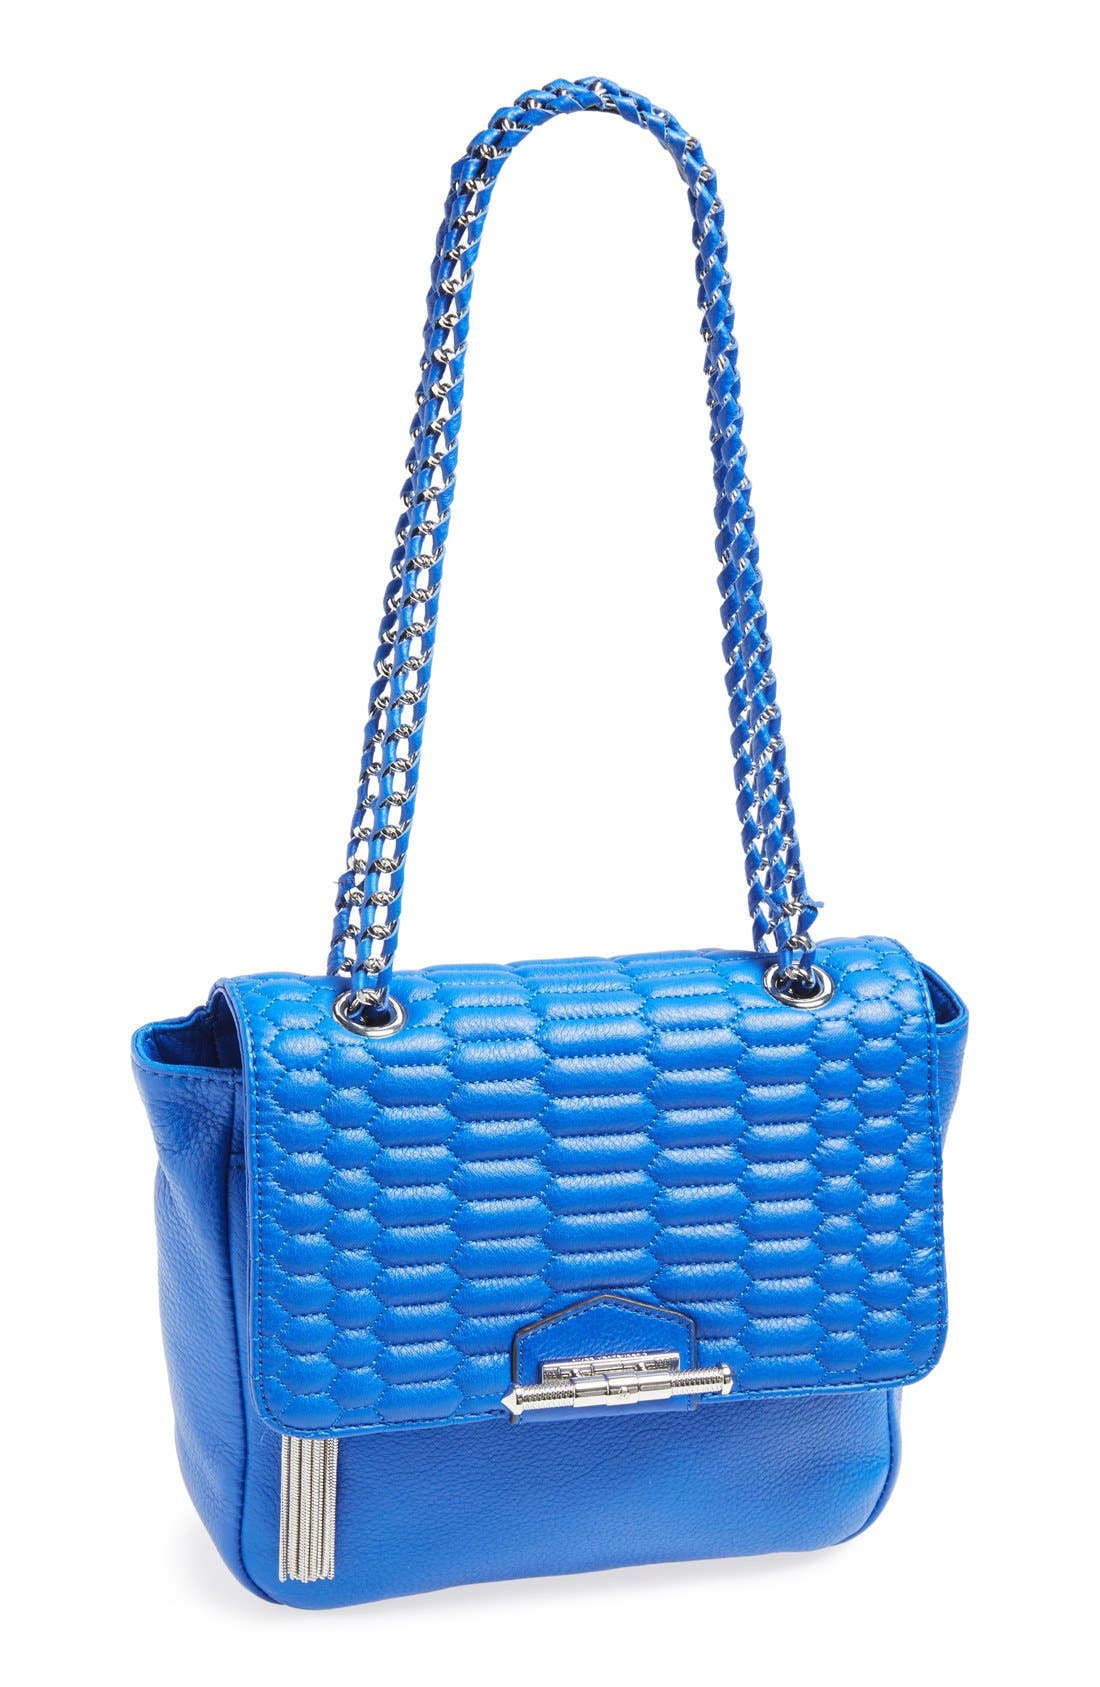 Alternate Image 1 Selected - Aimee Kestenberg 'Ambria' Convertible Shoulder Bag